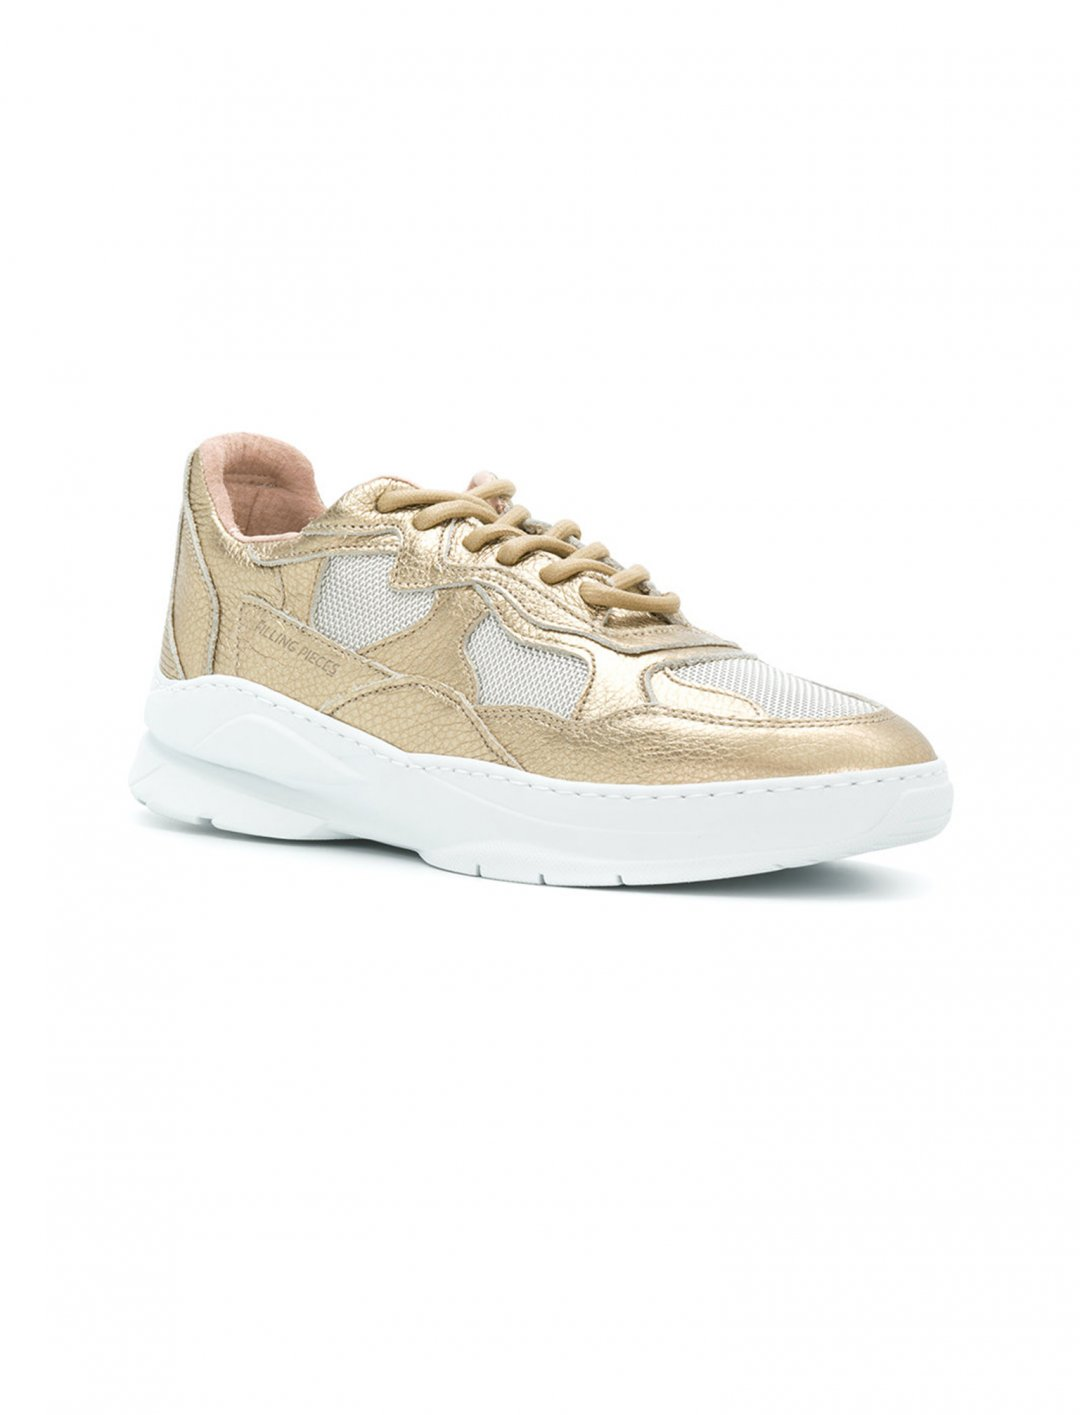 "Filling Pieces Chunky Sole Sneakers {""id"":12,""product_section_id"":1,""name"":""Shoes"",""order"":12} Filling Pieces"